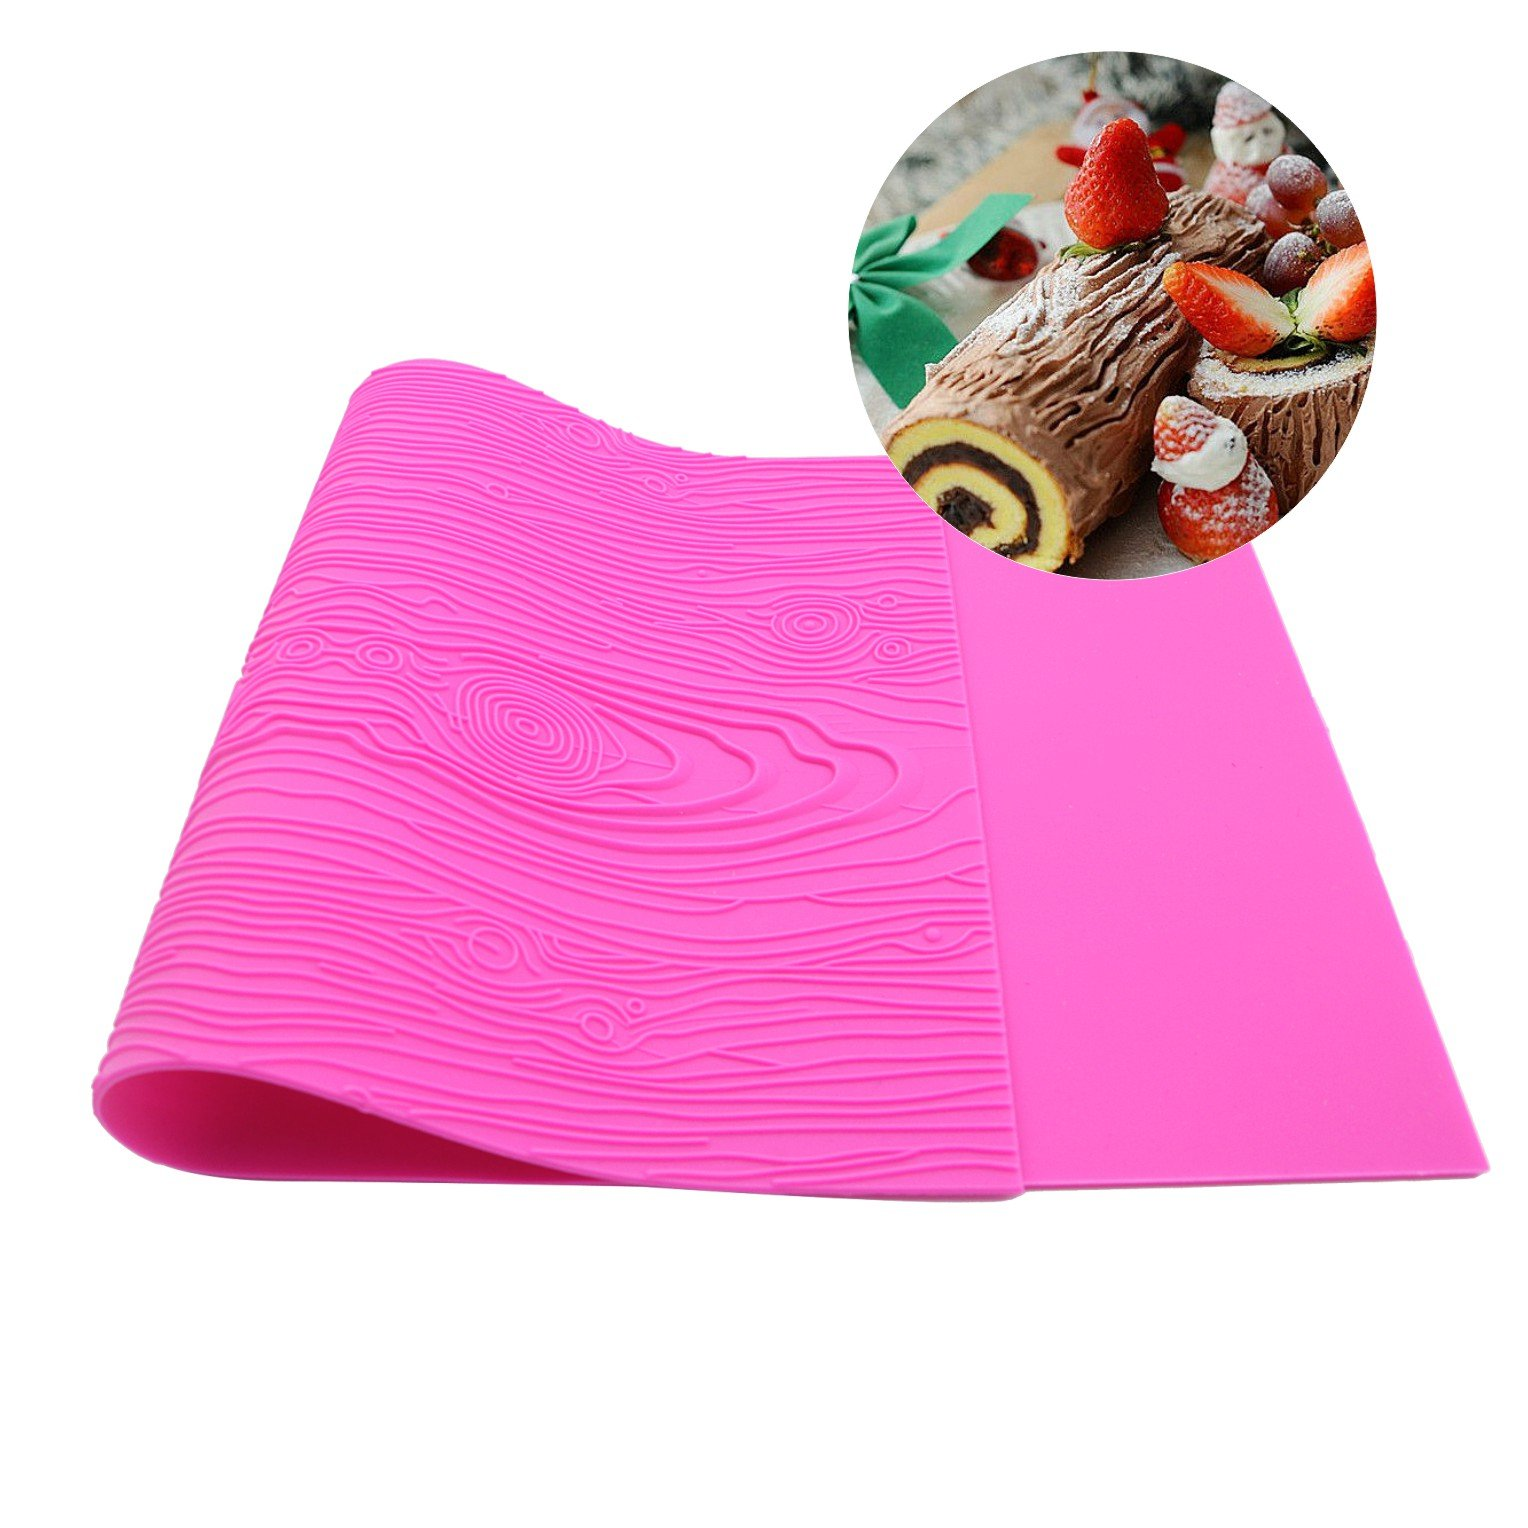 Warmoor Silicone Cake Fondant Mat, Woodgrain Impression Lace Mold (pink)